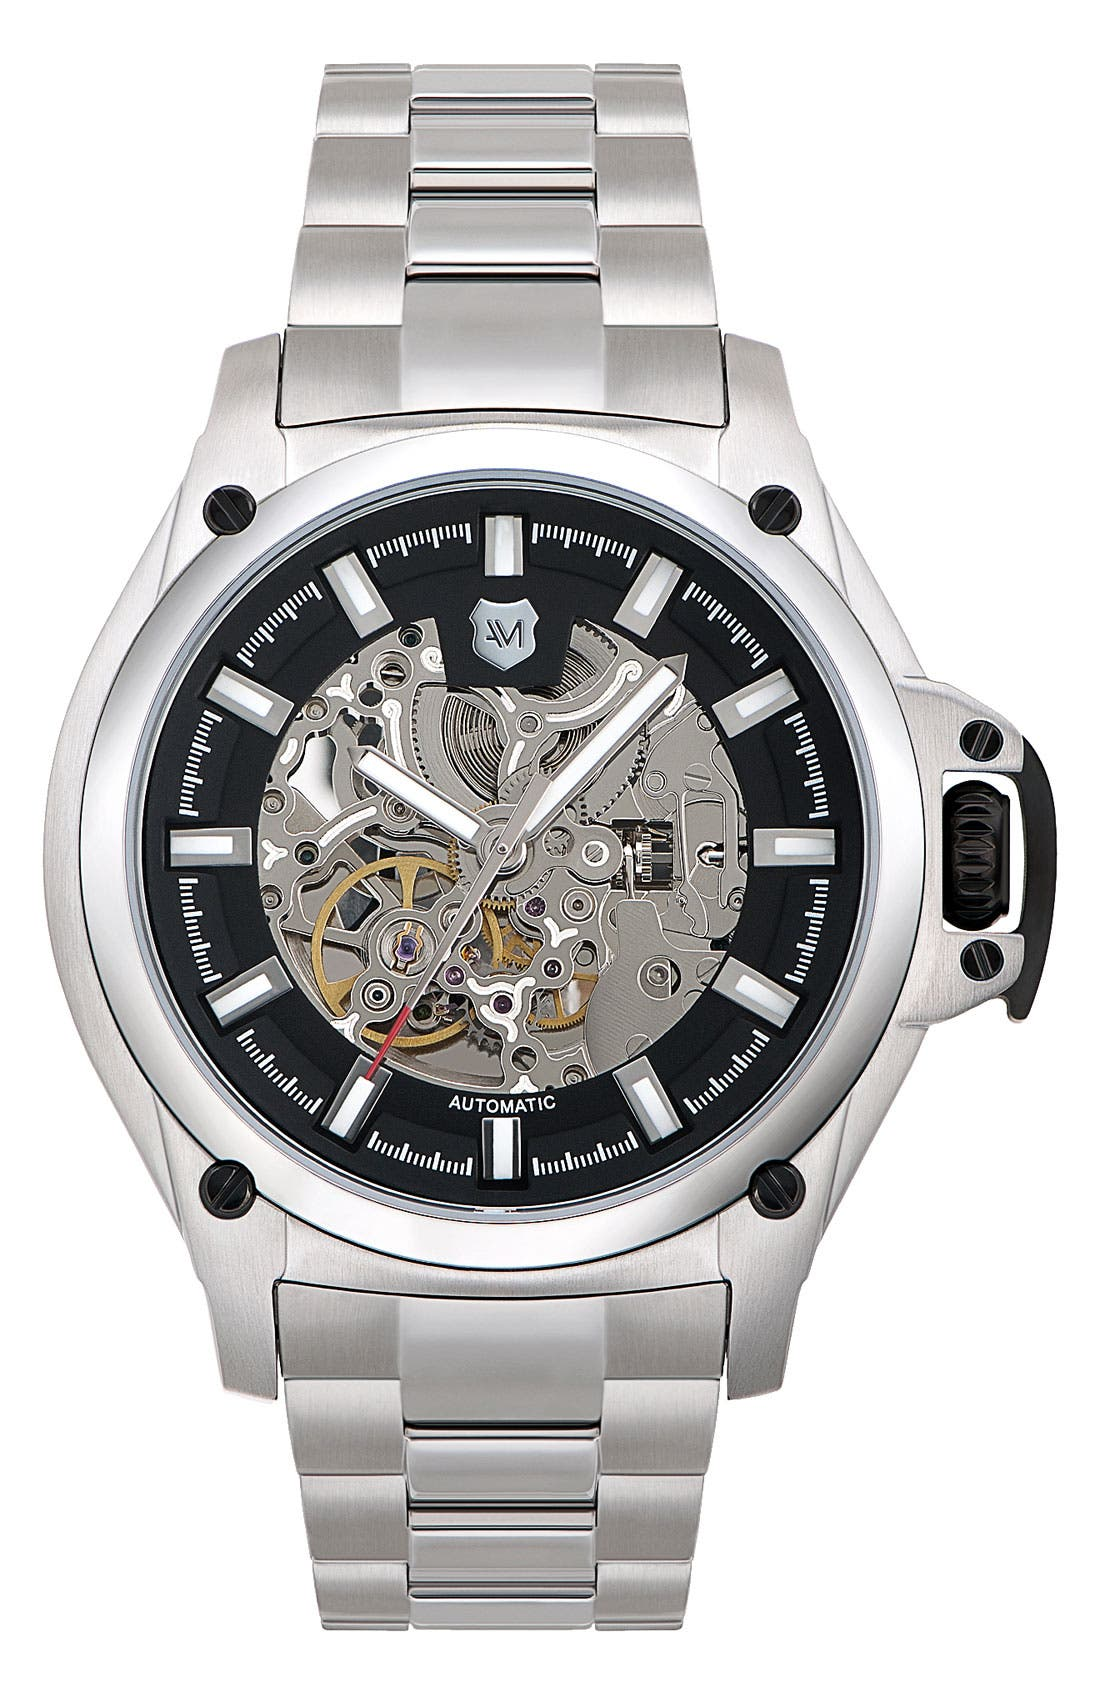 Main Image - Andrew Marc Watches 'G-III Pro' Automatic Bracelet Watch, 44mm